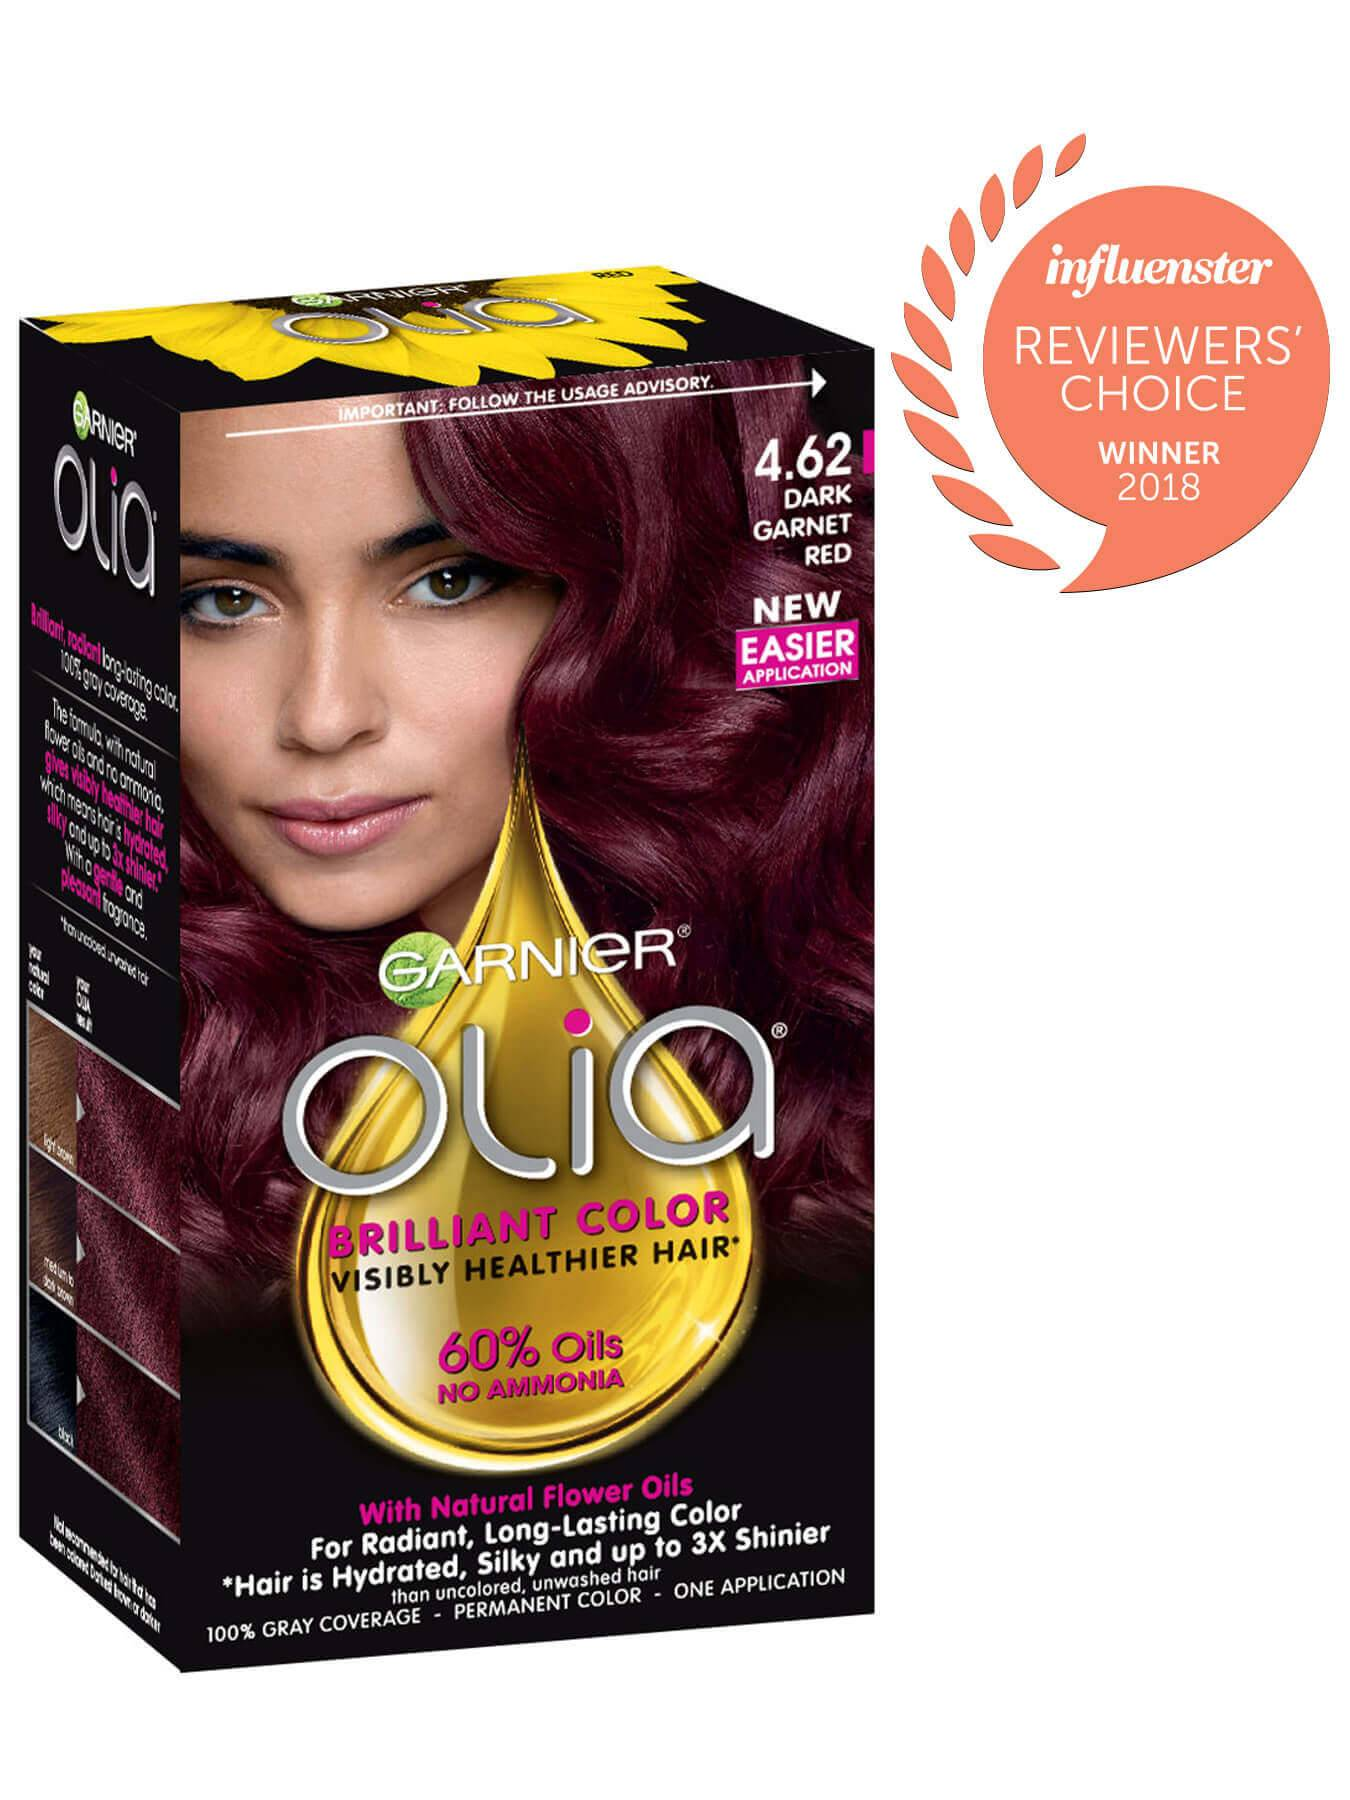 Garnier Olia Packshot Award 4.62 Dark Garnet Red